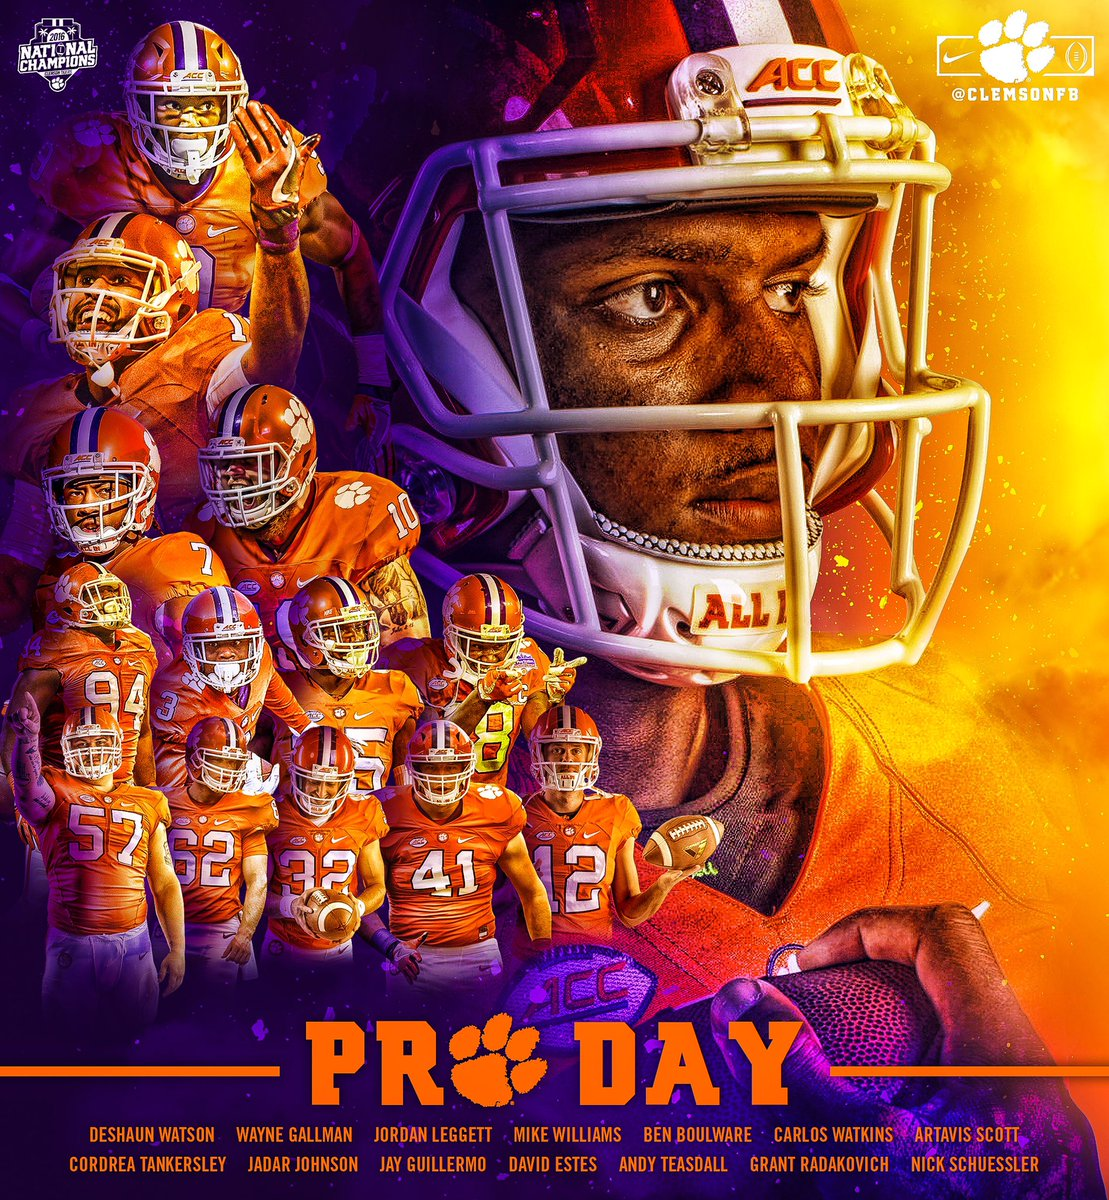 Show out, #ClemsonFamily.  See our Pro Day live on WatchESPN from 10am...